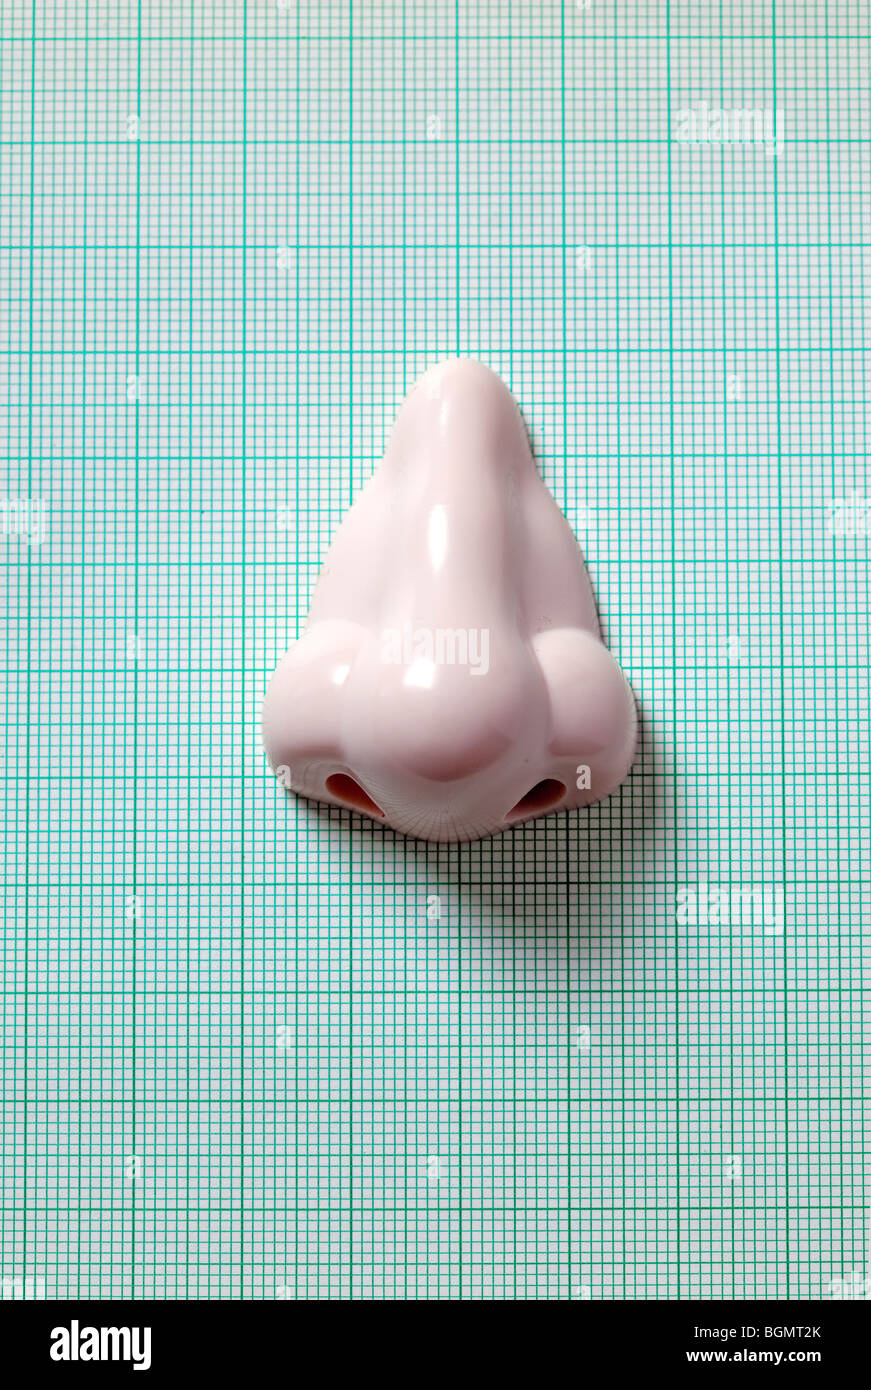 plastic nose on green graph paper - Stock Image